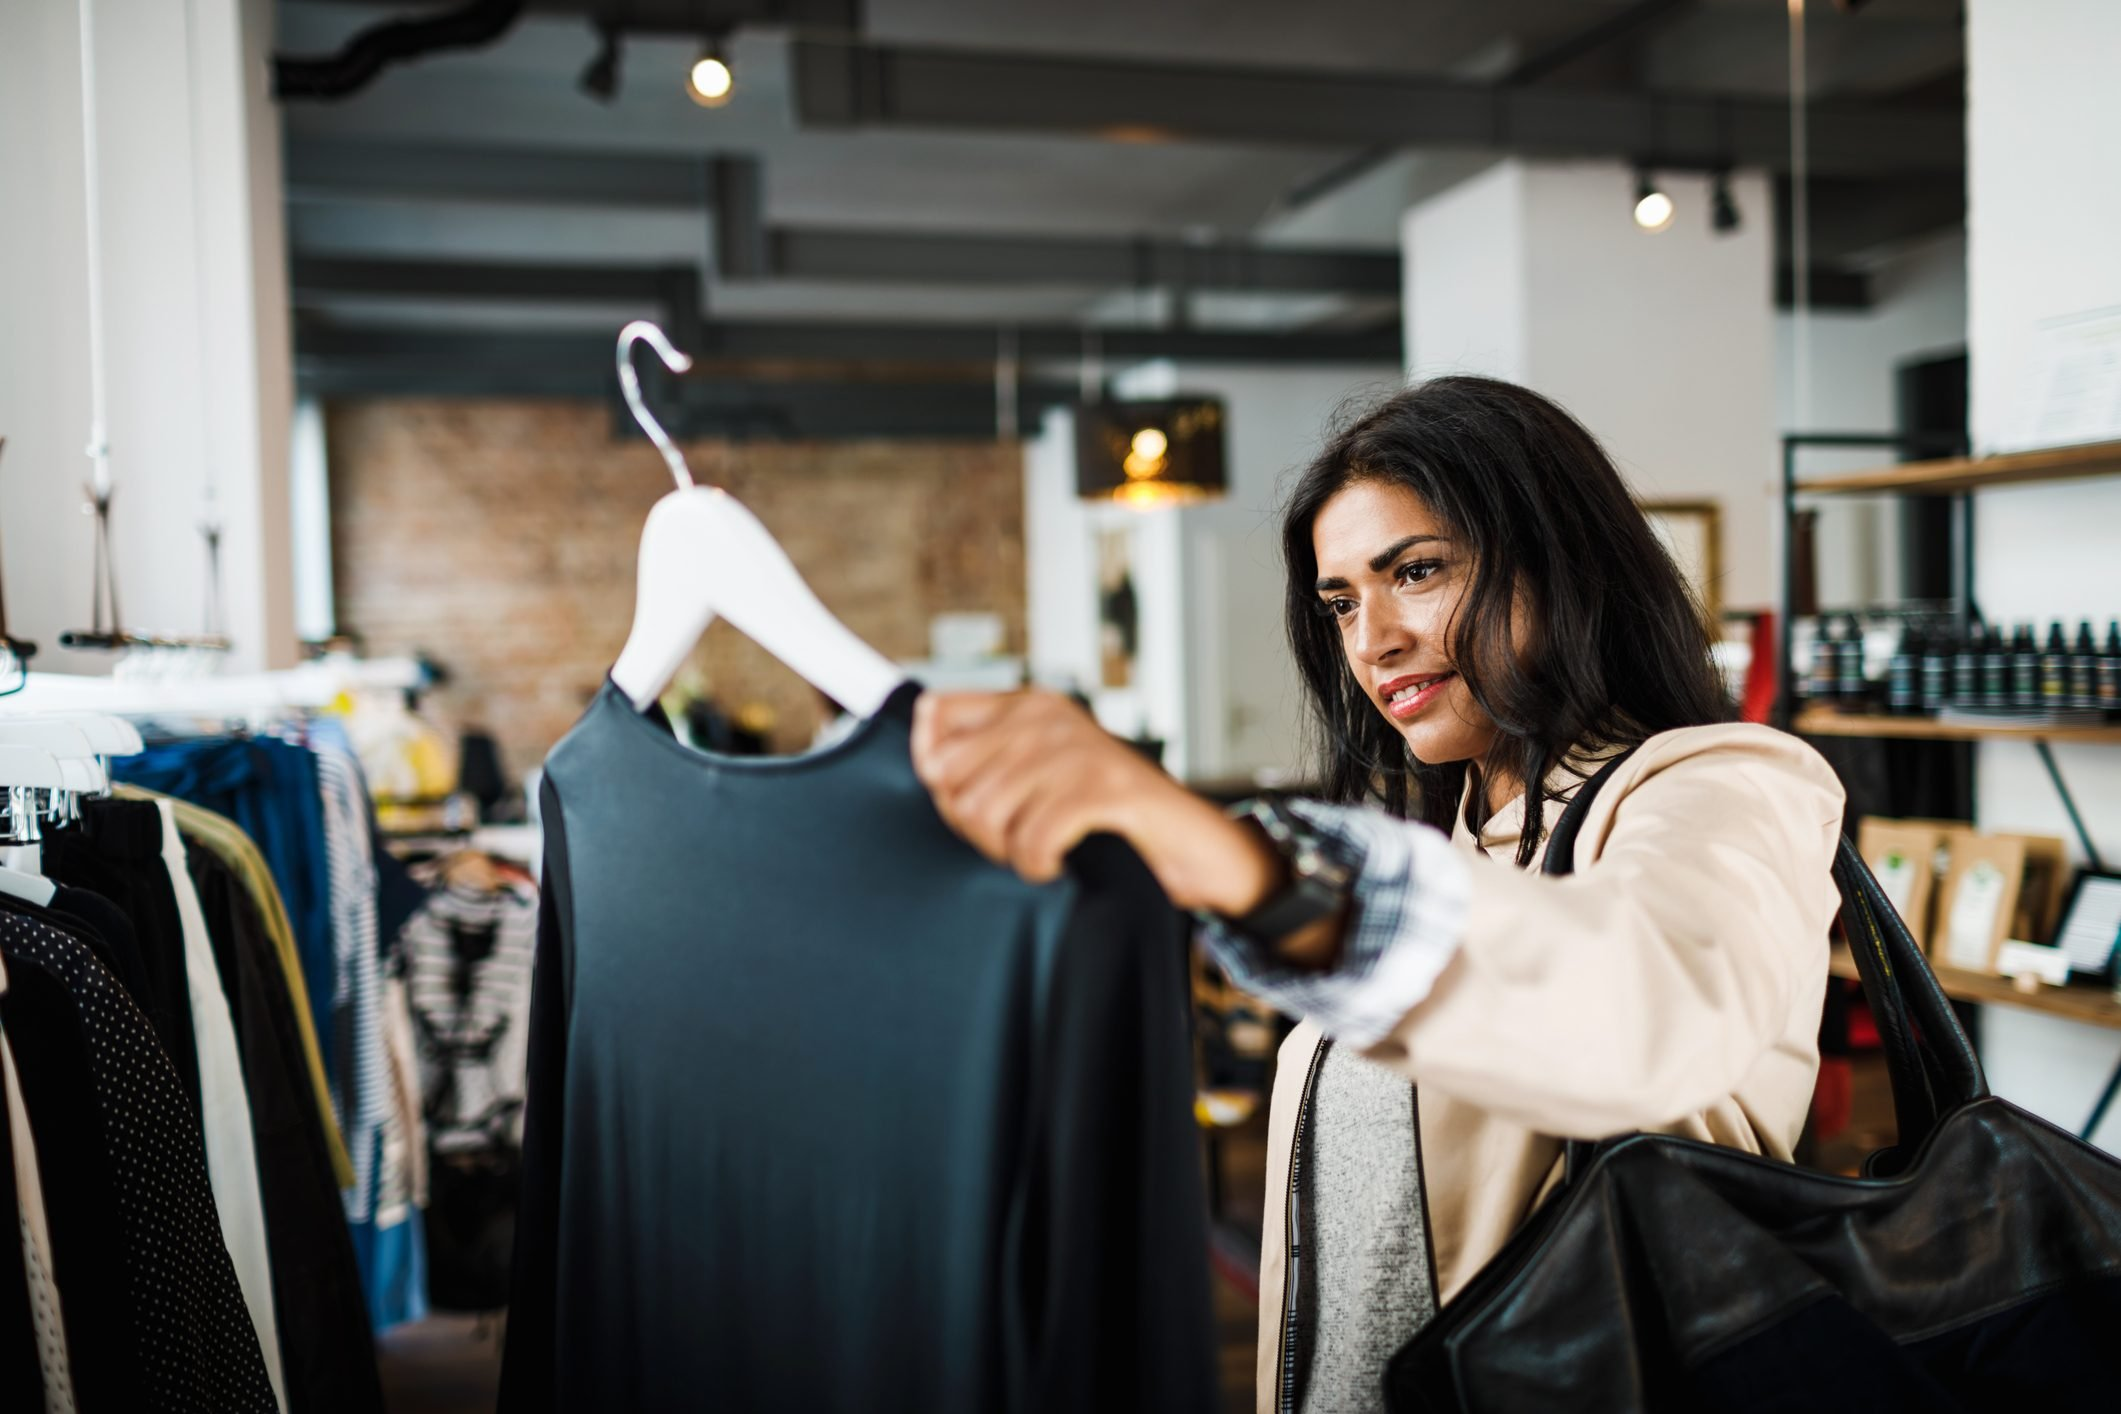 Woman Looking At Blouse While Out Shopping